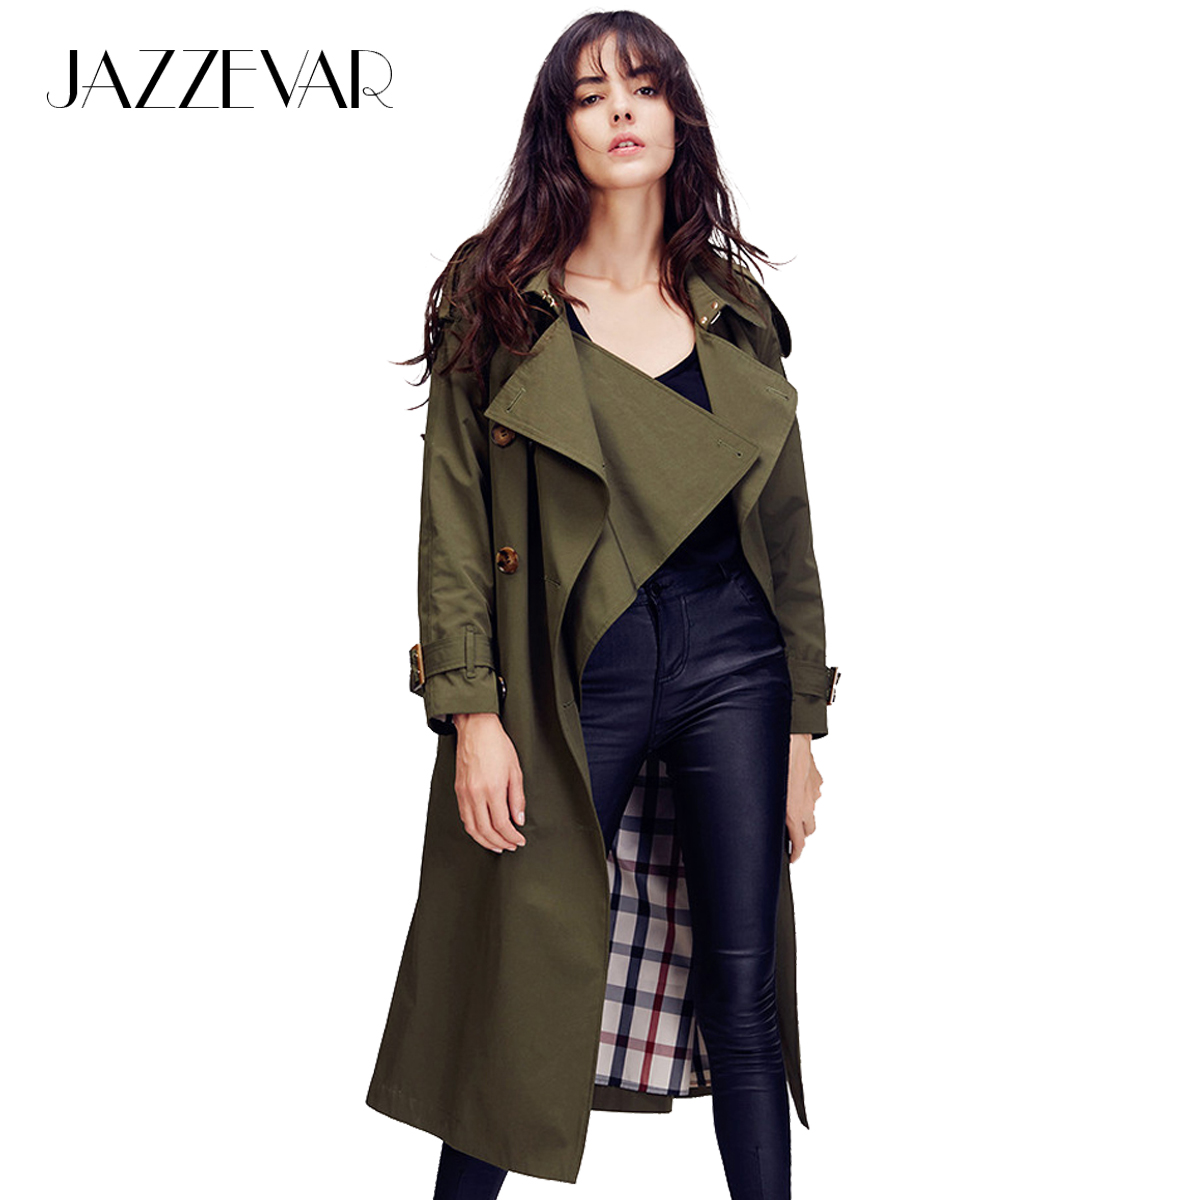 JAZZEVAR 2019 Autumn New High Fashion Brand Women's Double Breasted trench coat Wasserfall Collar outwear Loose Clothing